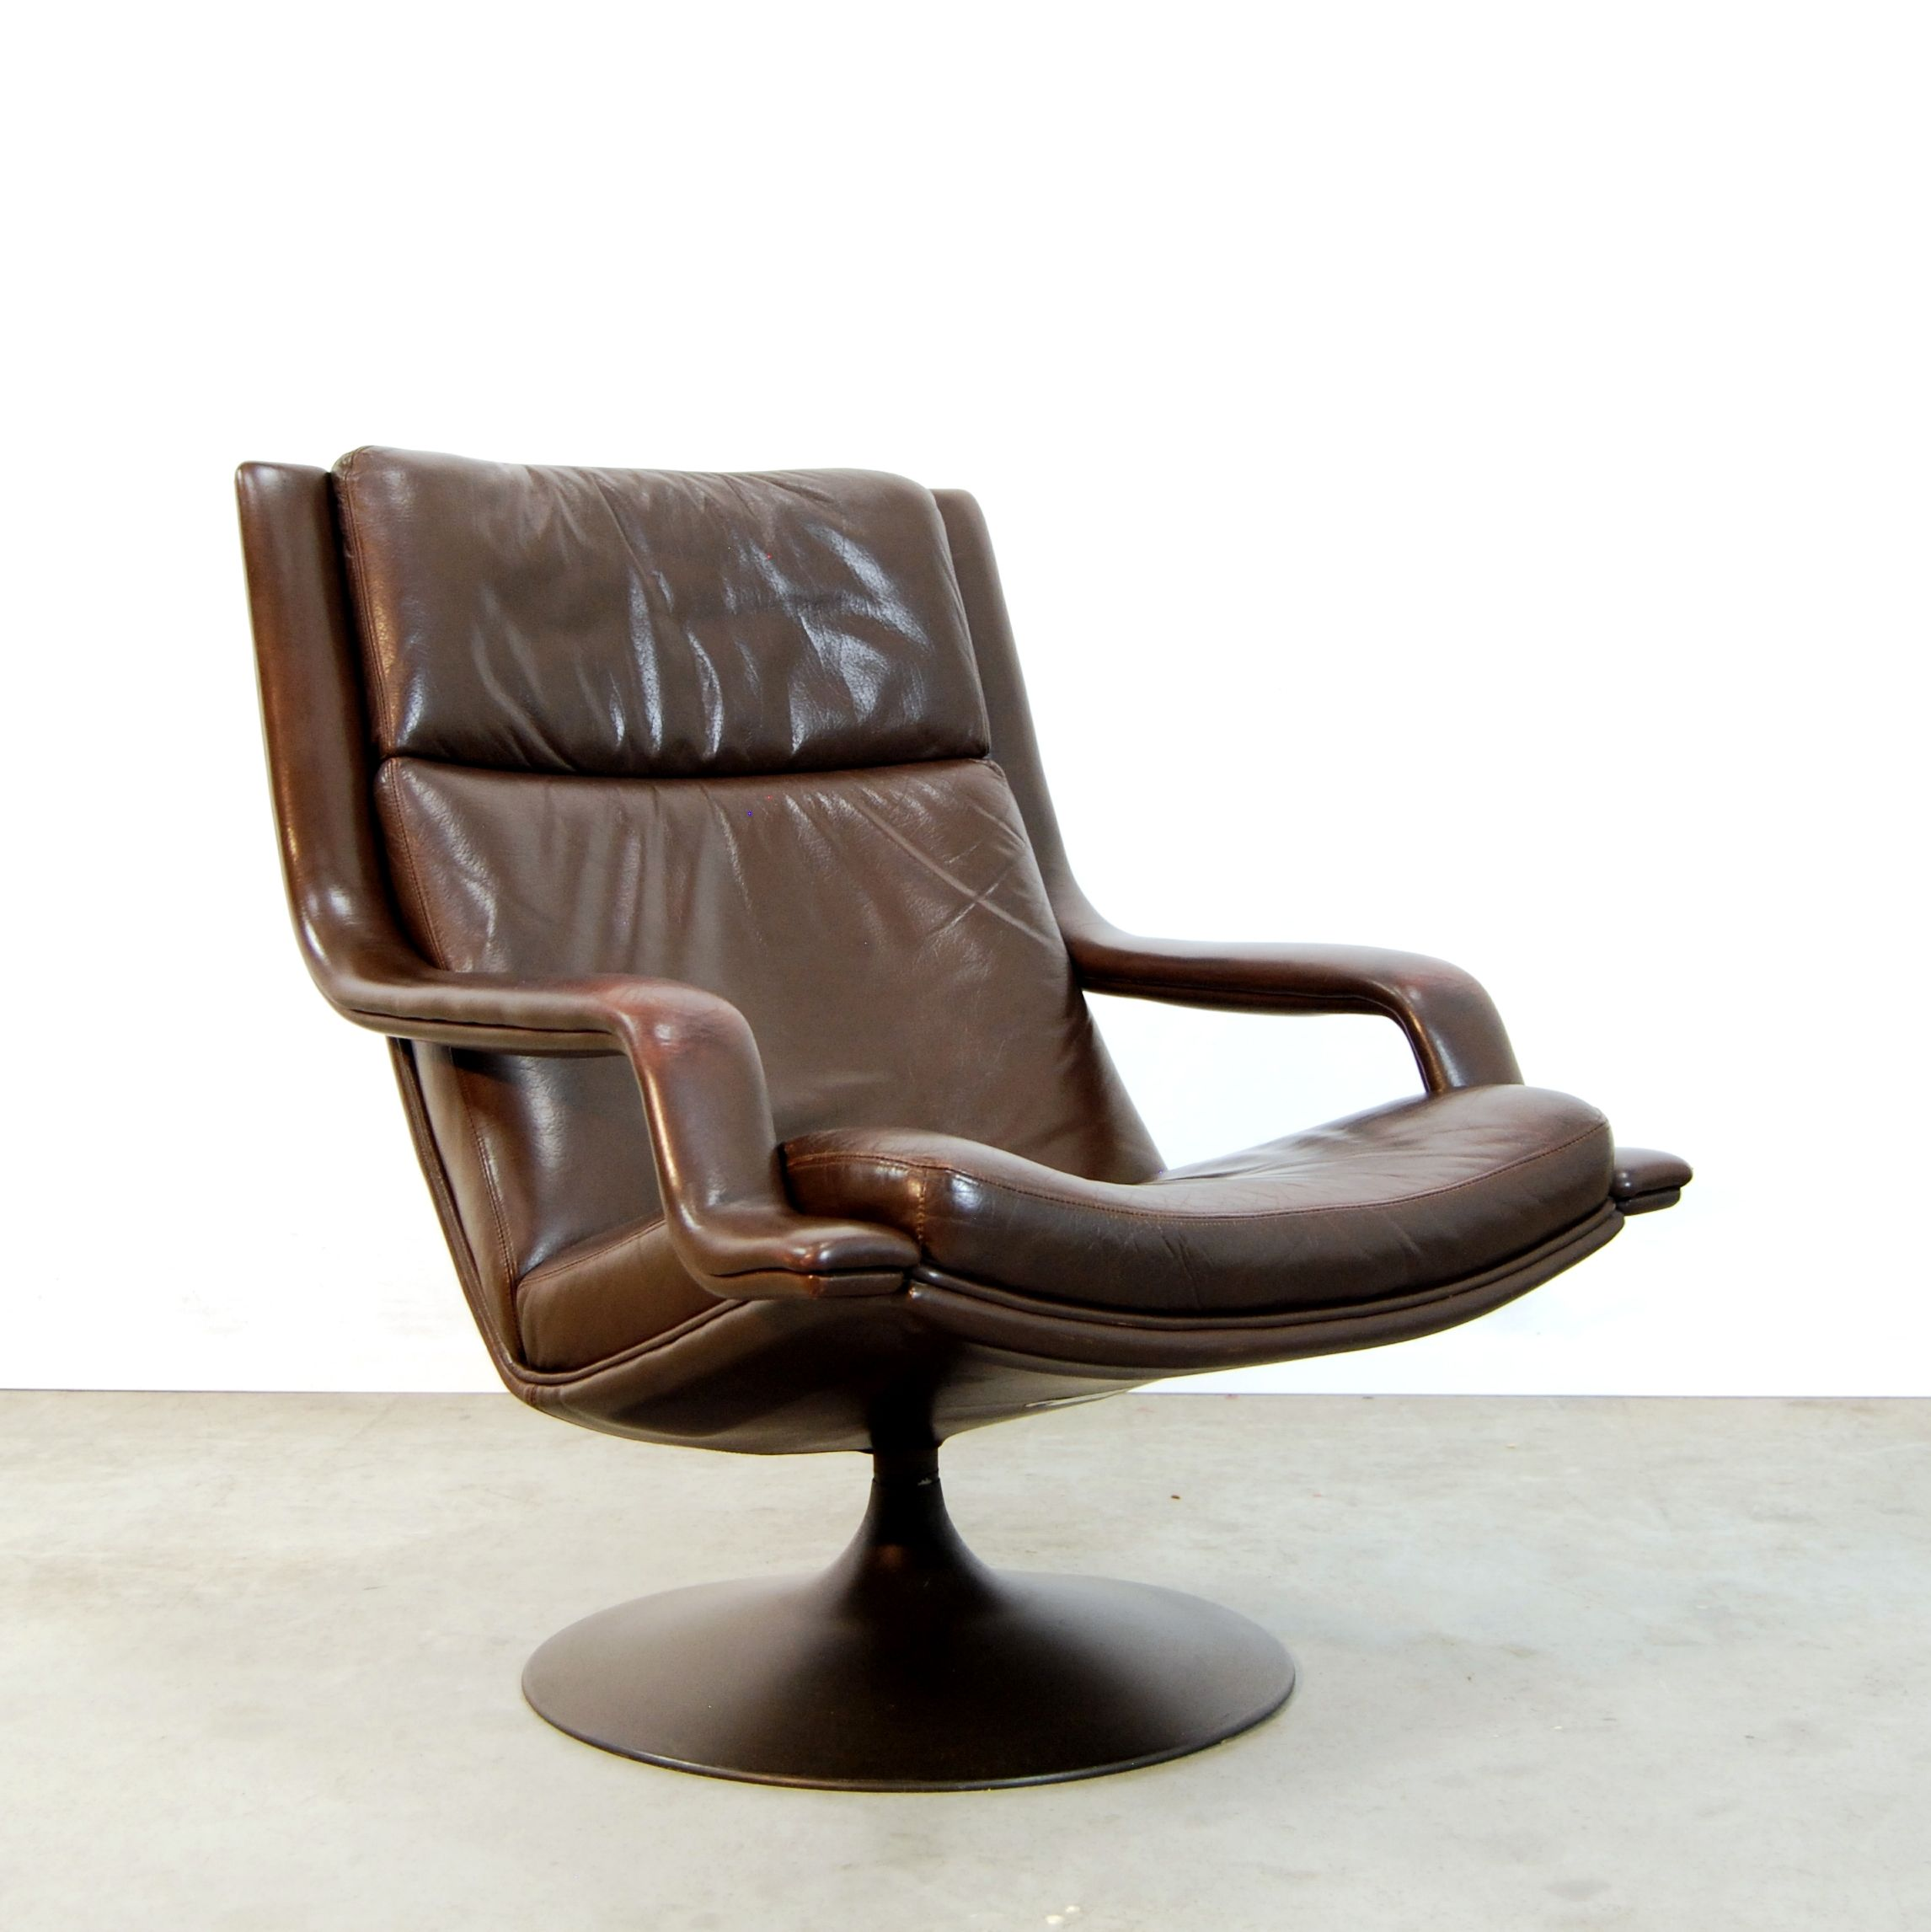 F140 lounge chair by Geoffrey Harcourt for Artifort 1970s